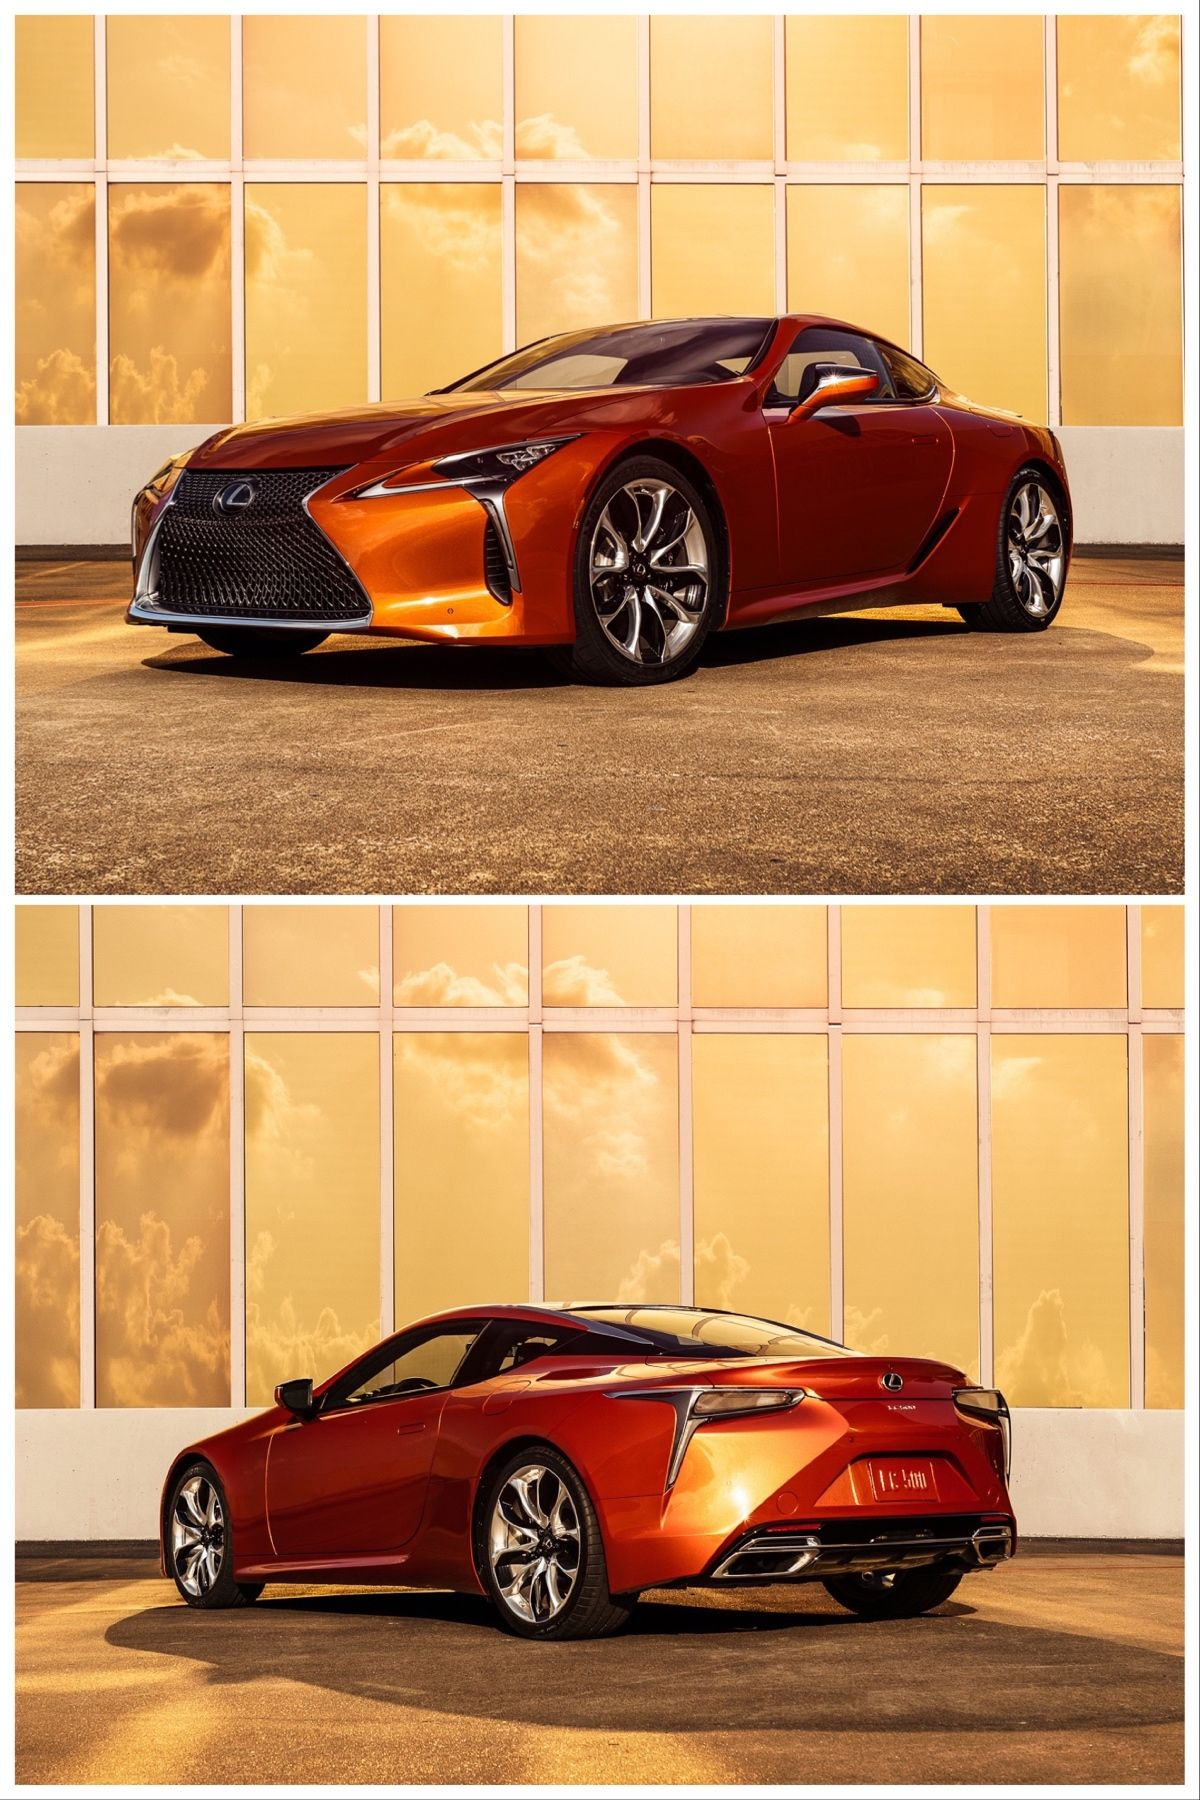 Limited Edition Lexus Lc Convertible And Striking Orange Paint Show Off Sparkle In 2020 Lexus Lc Lexus Convertible